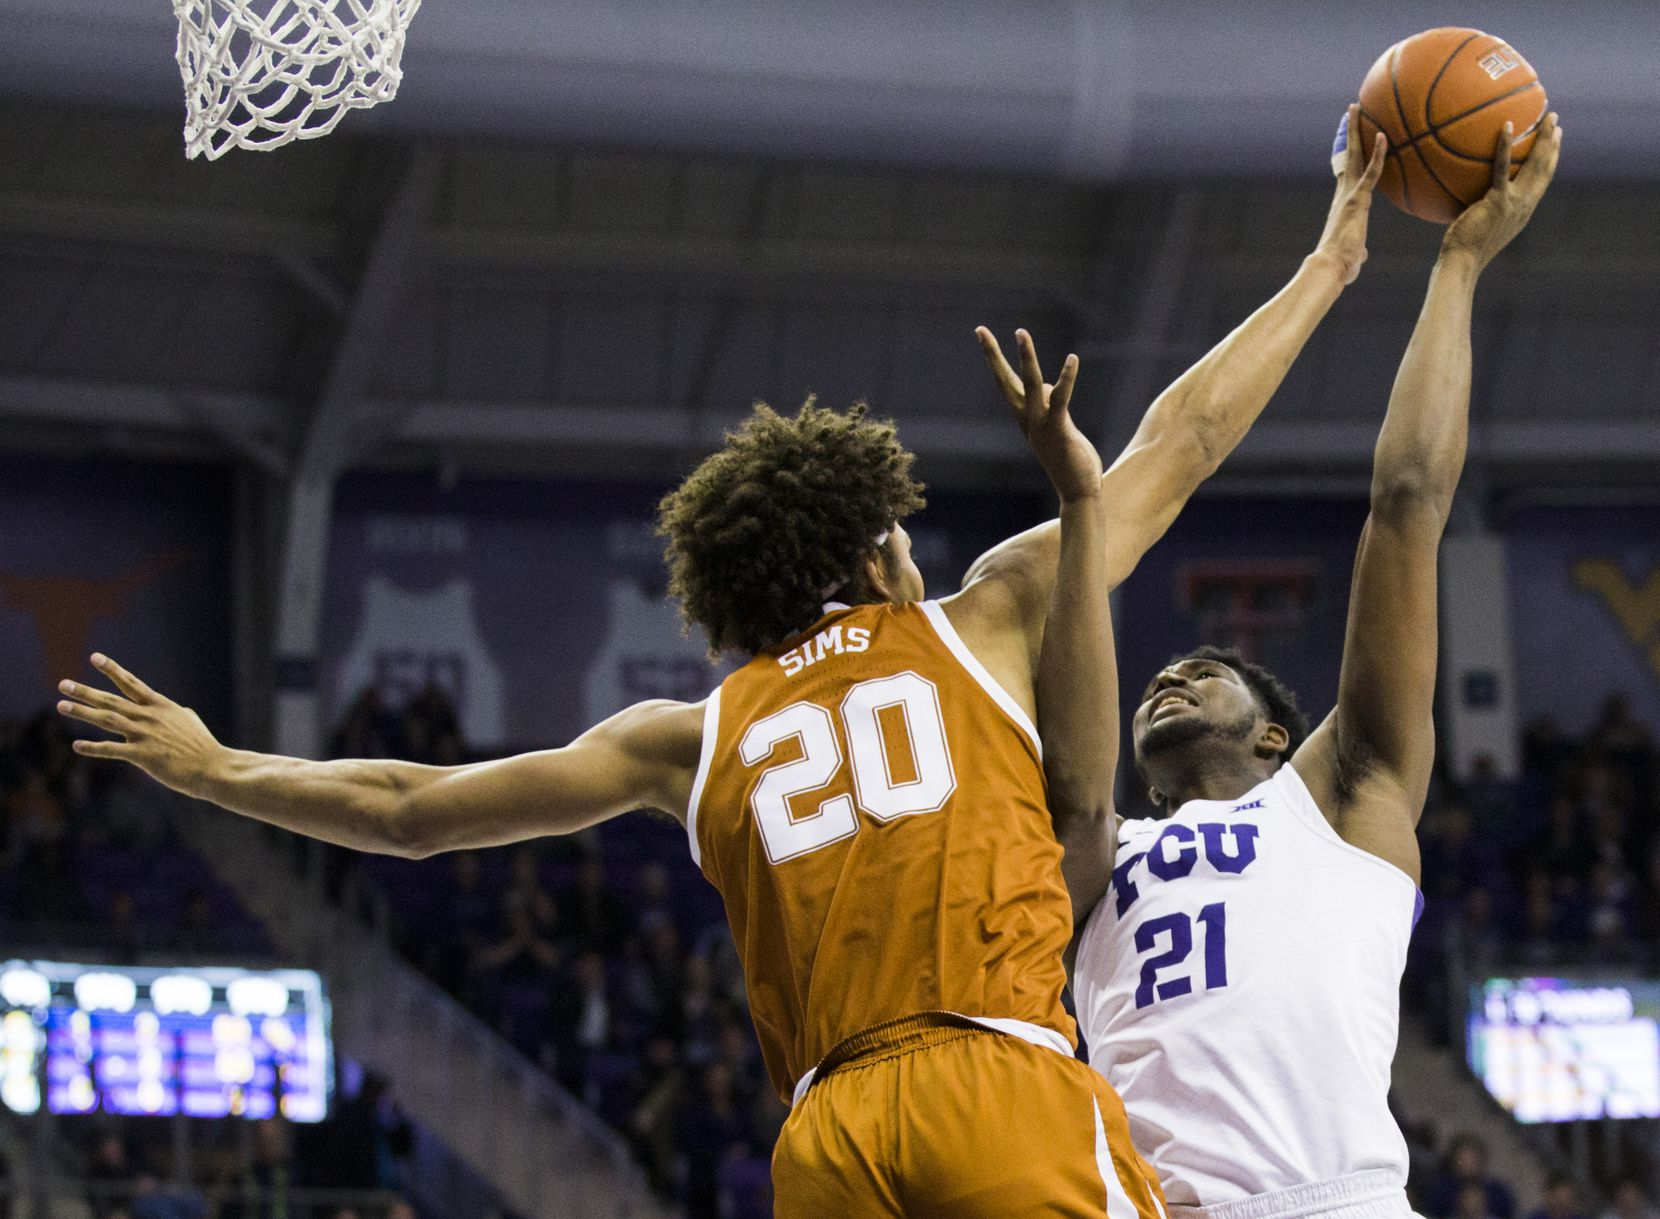 TCU Horned Frogs center Kevin Samuel (21) has his shot blocked by Texas Longhorns forward Jericho Sims (20) during the first half of an NCAA men's basketball game between the University of Texas and TCU on Wednesday, January 29, 2020 at Schollmaier Arena on the TCU campus in Fort Worth.